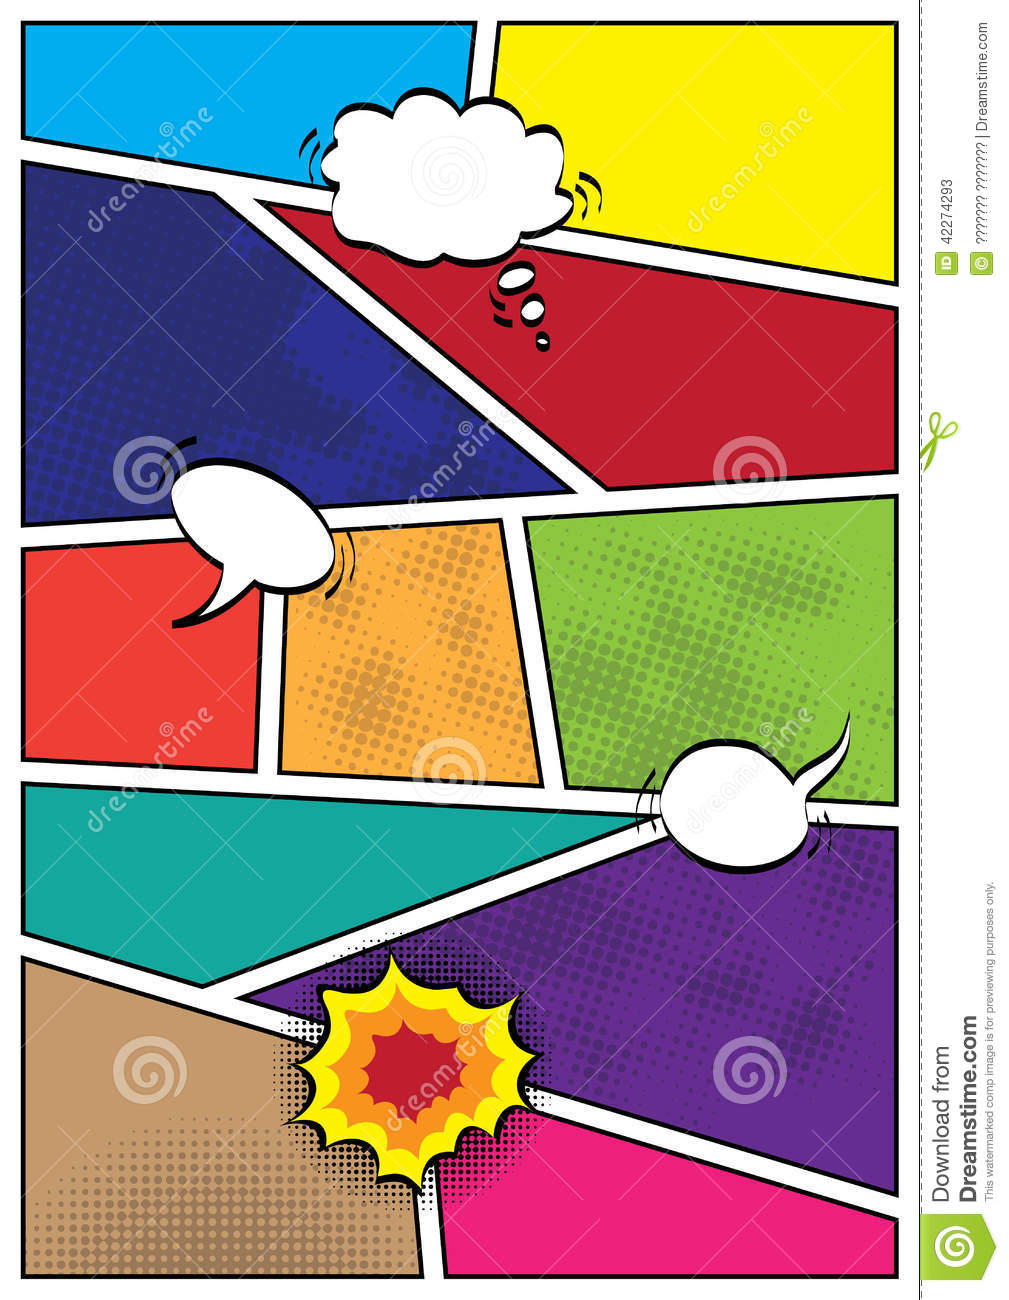 Stock Vector: Comics popart style blank layout template